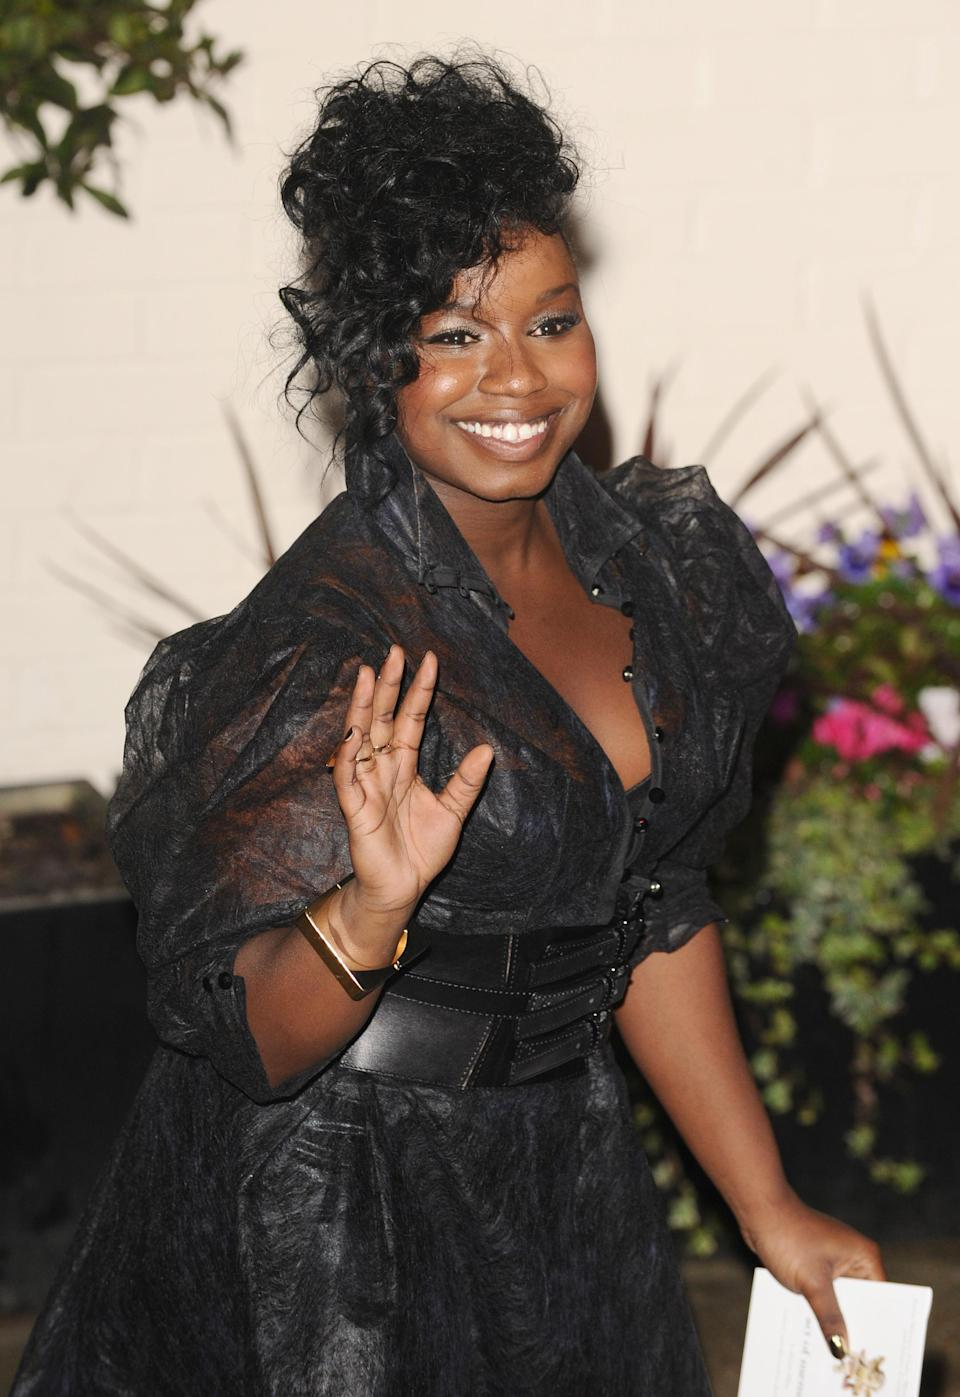 Contestant Misha B leaves following the X Factor, at Fountain Studios, in Wembley.   (Photo by Dominic Lipinski/PA Images via Getty Images)